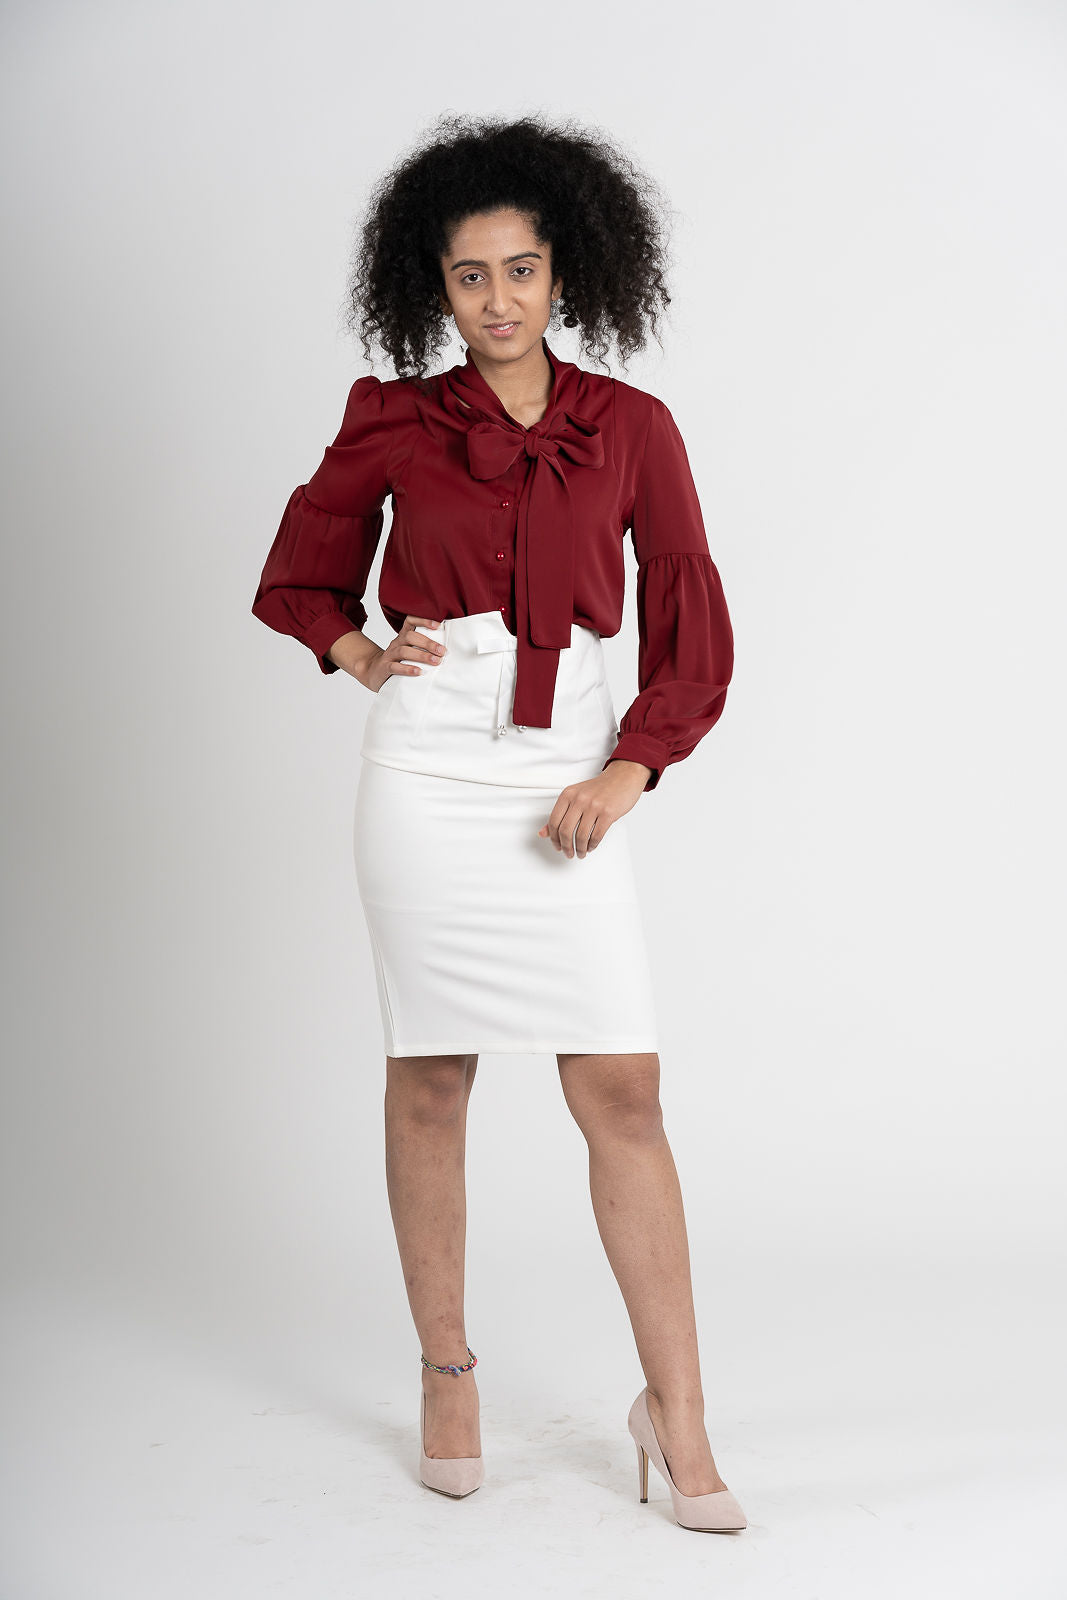 Aftopepoíthisi High Waisted White Pencil Skirt